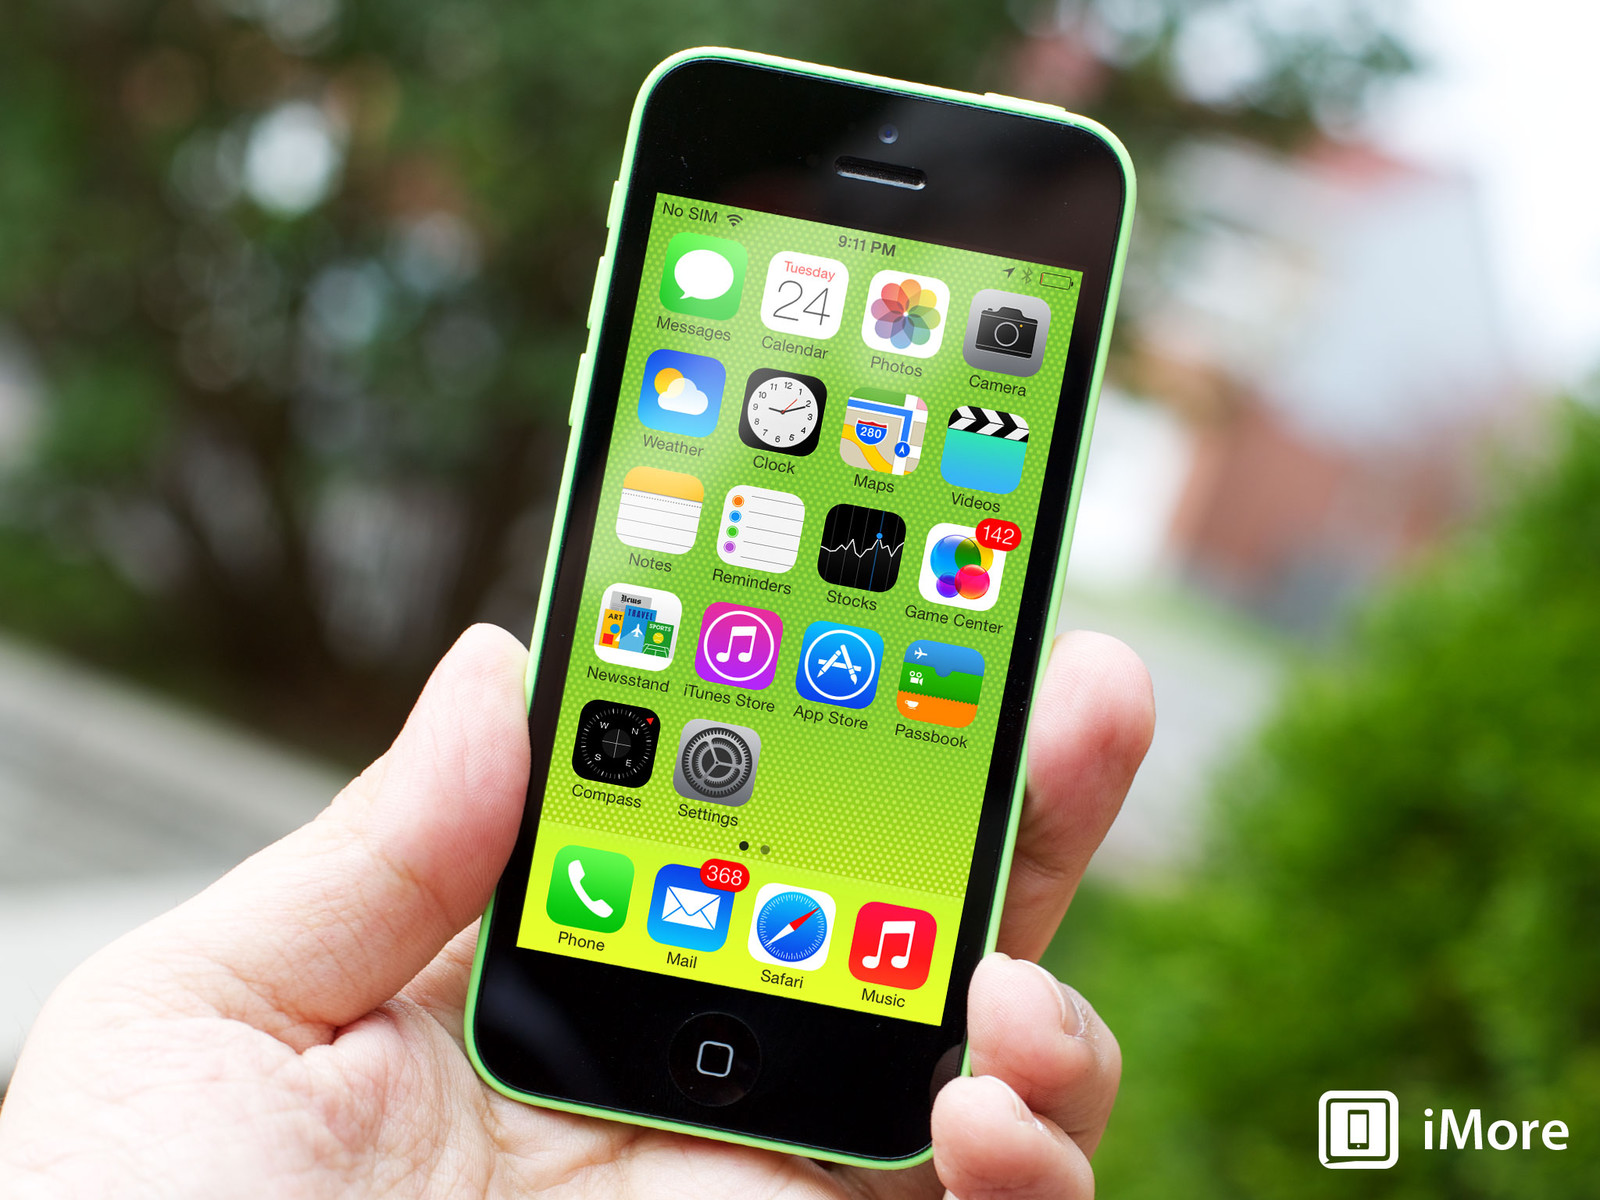 iPhone 5c review | iMore